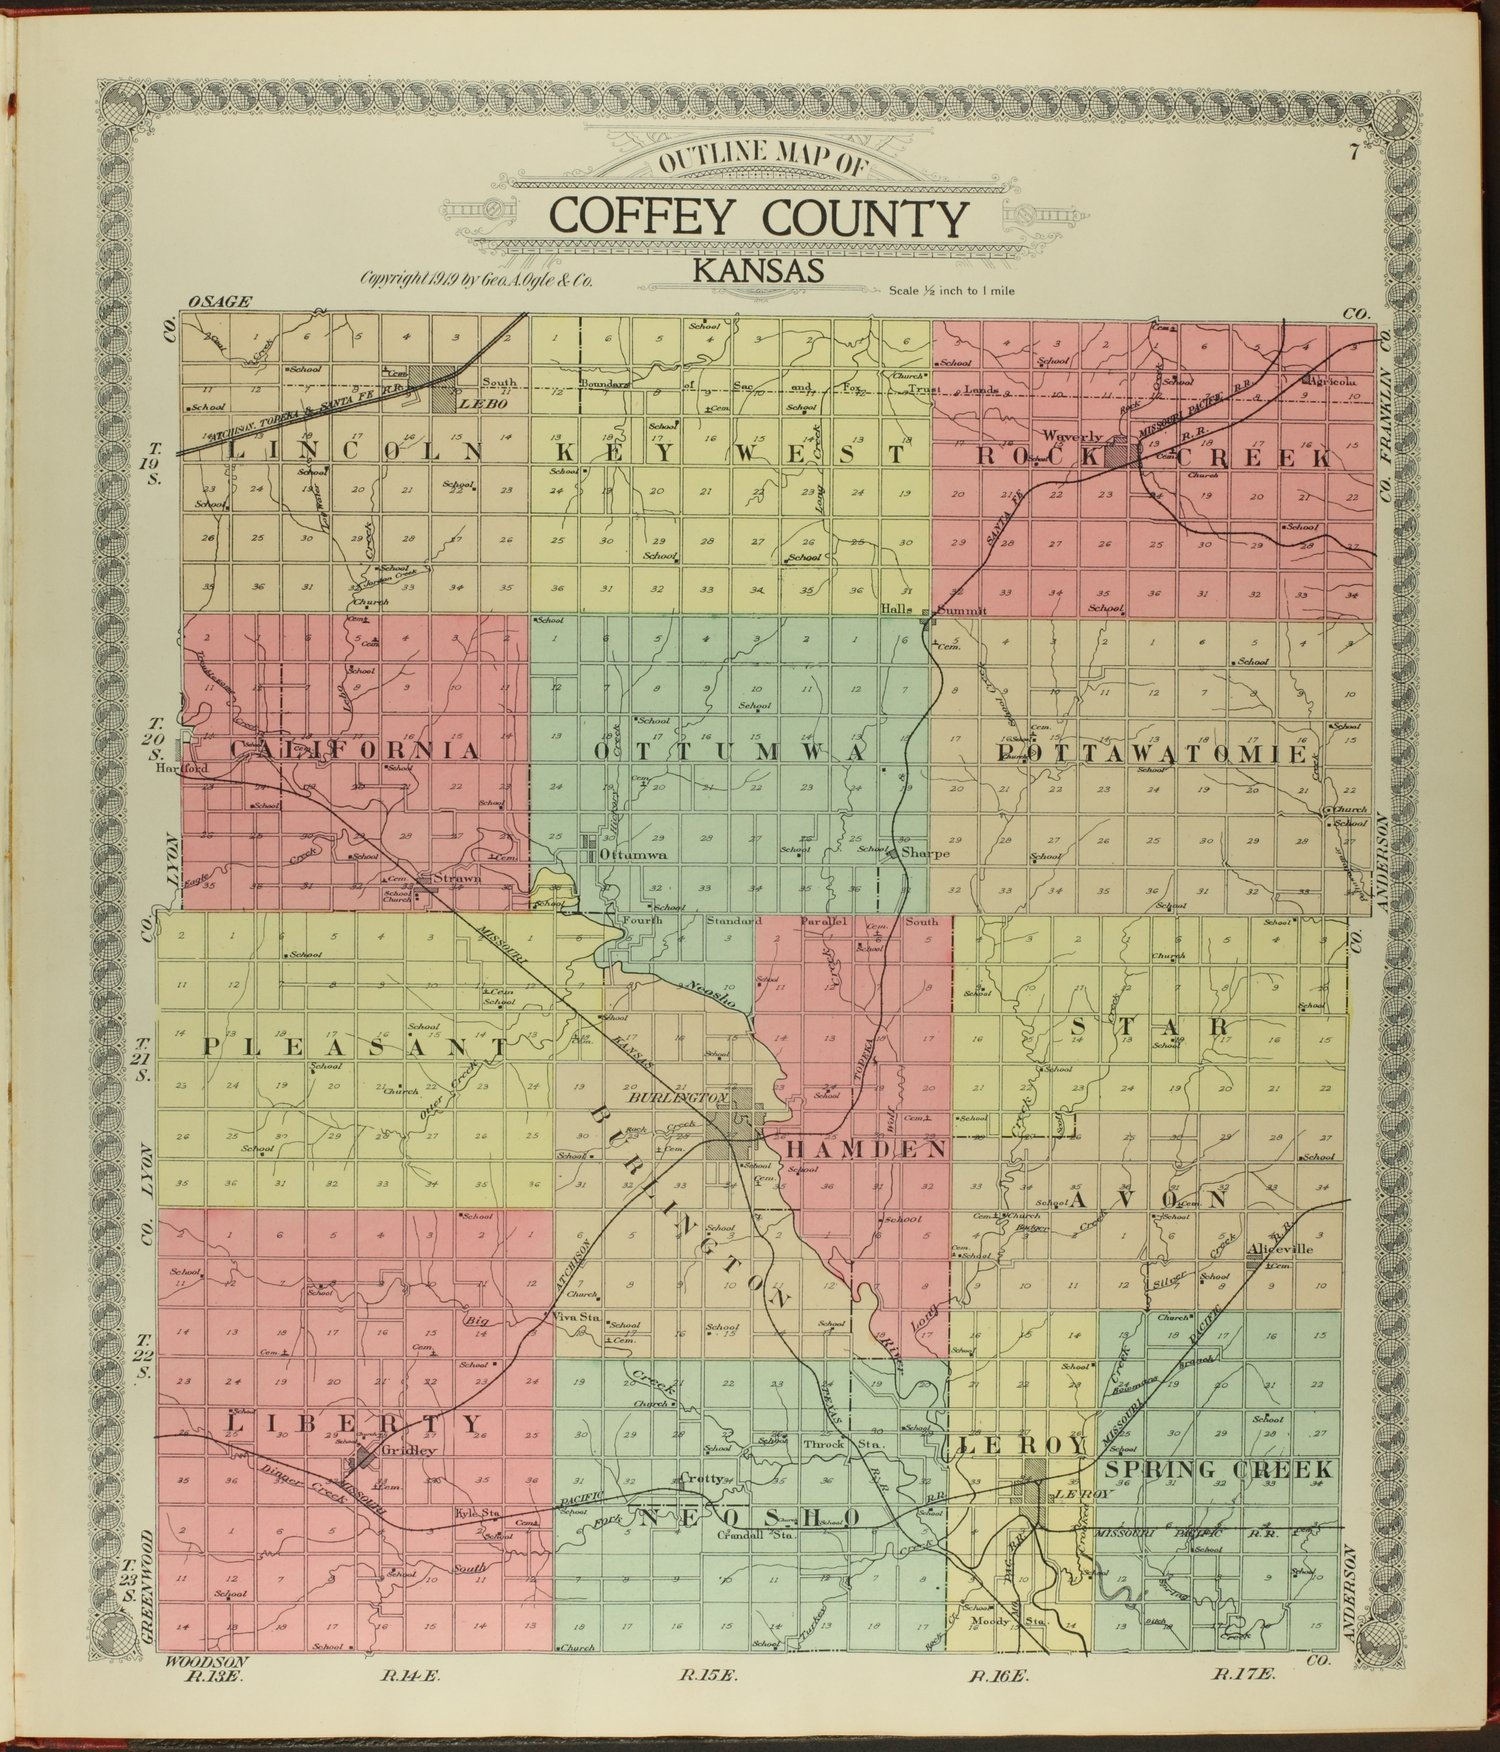 Standard atlas of Coffey County, Kansas - 7